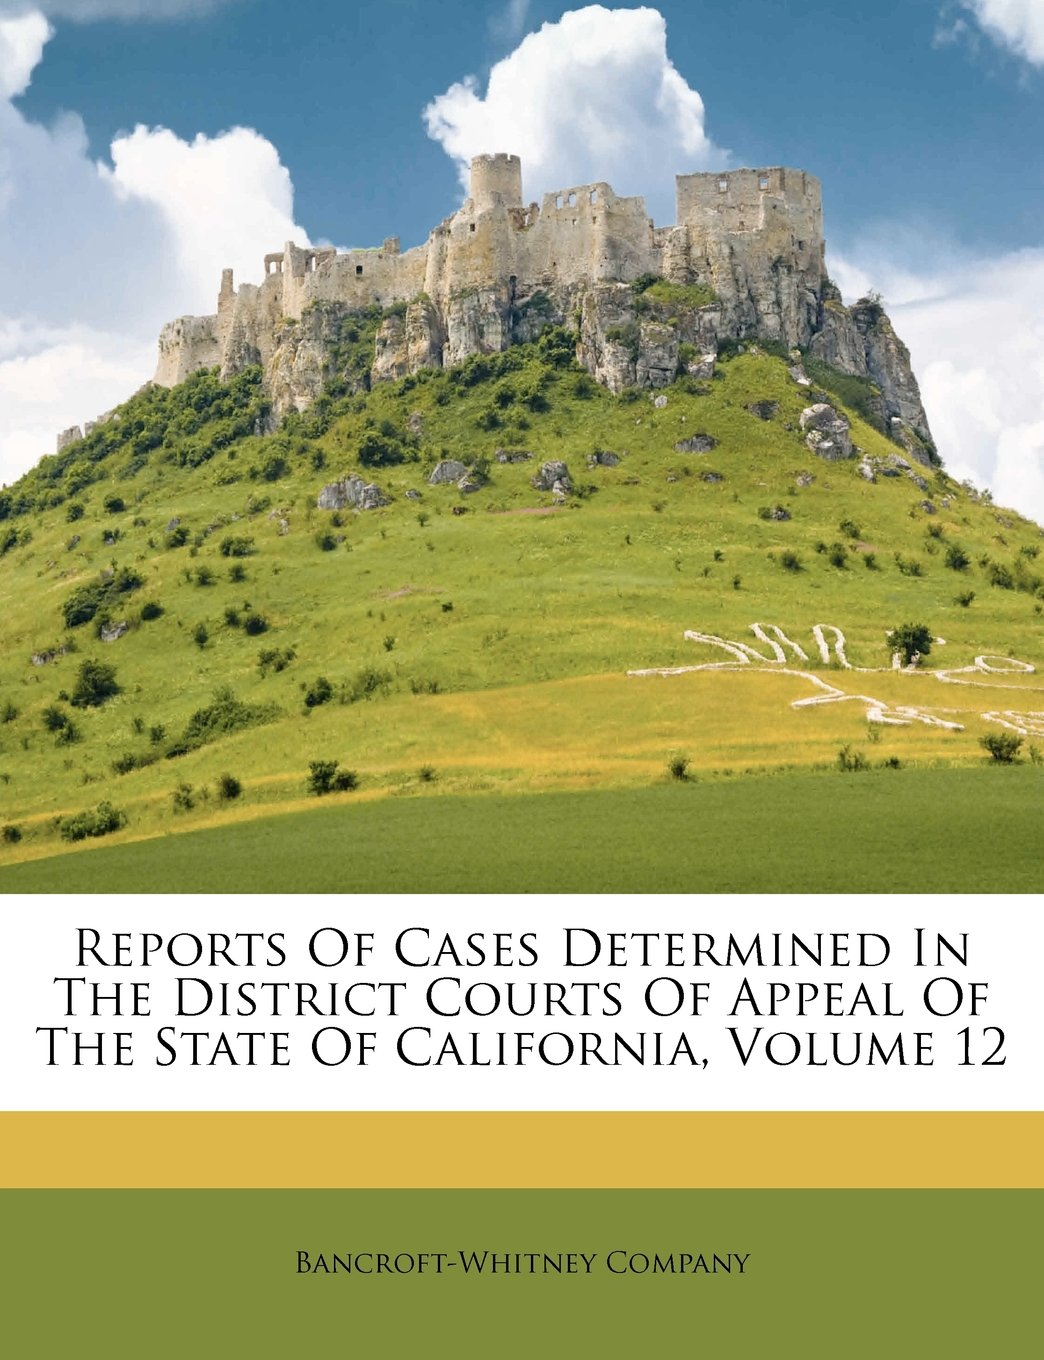 Reports Of Cases Determined In The District Courts Of Appeal Of The State Of California, Volume 12 ebook